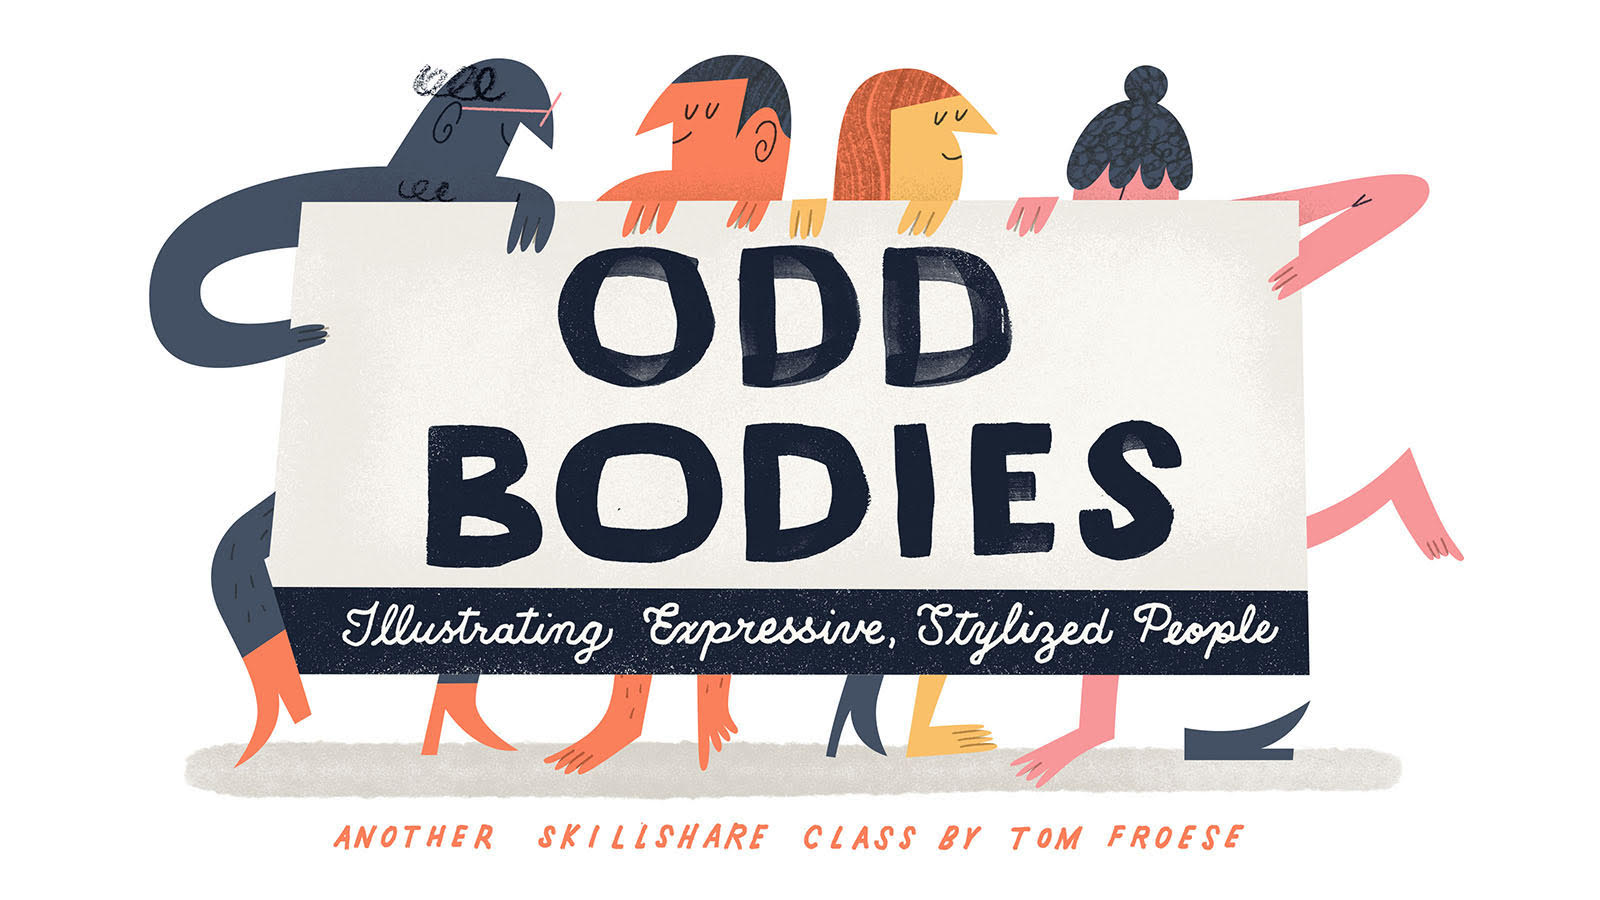 Tom Froese Odd Bodies Skillshare